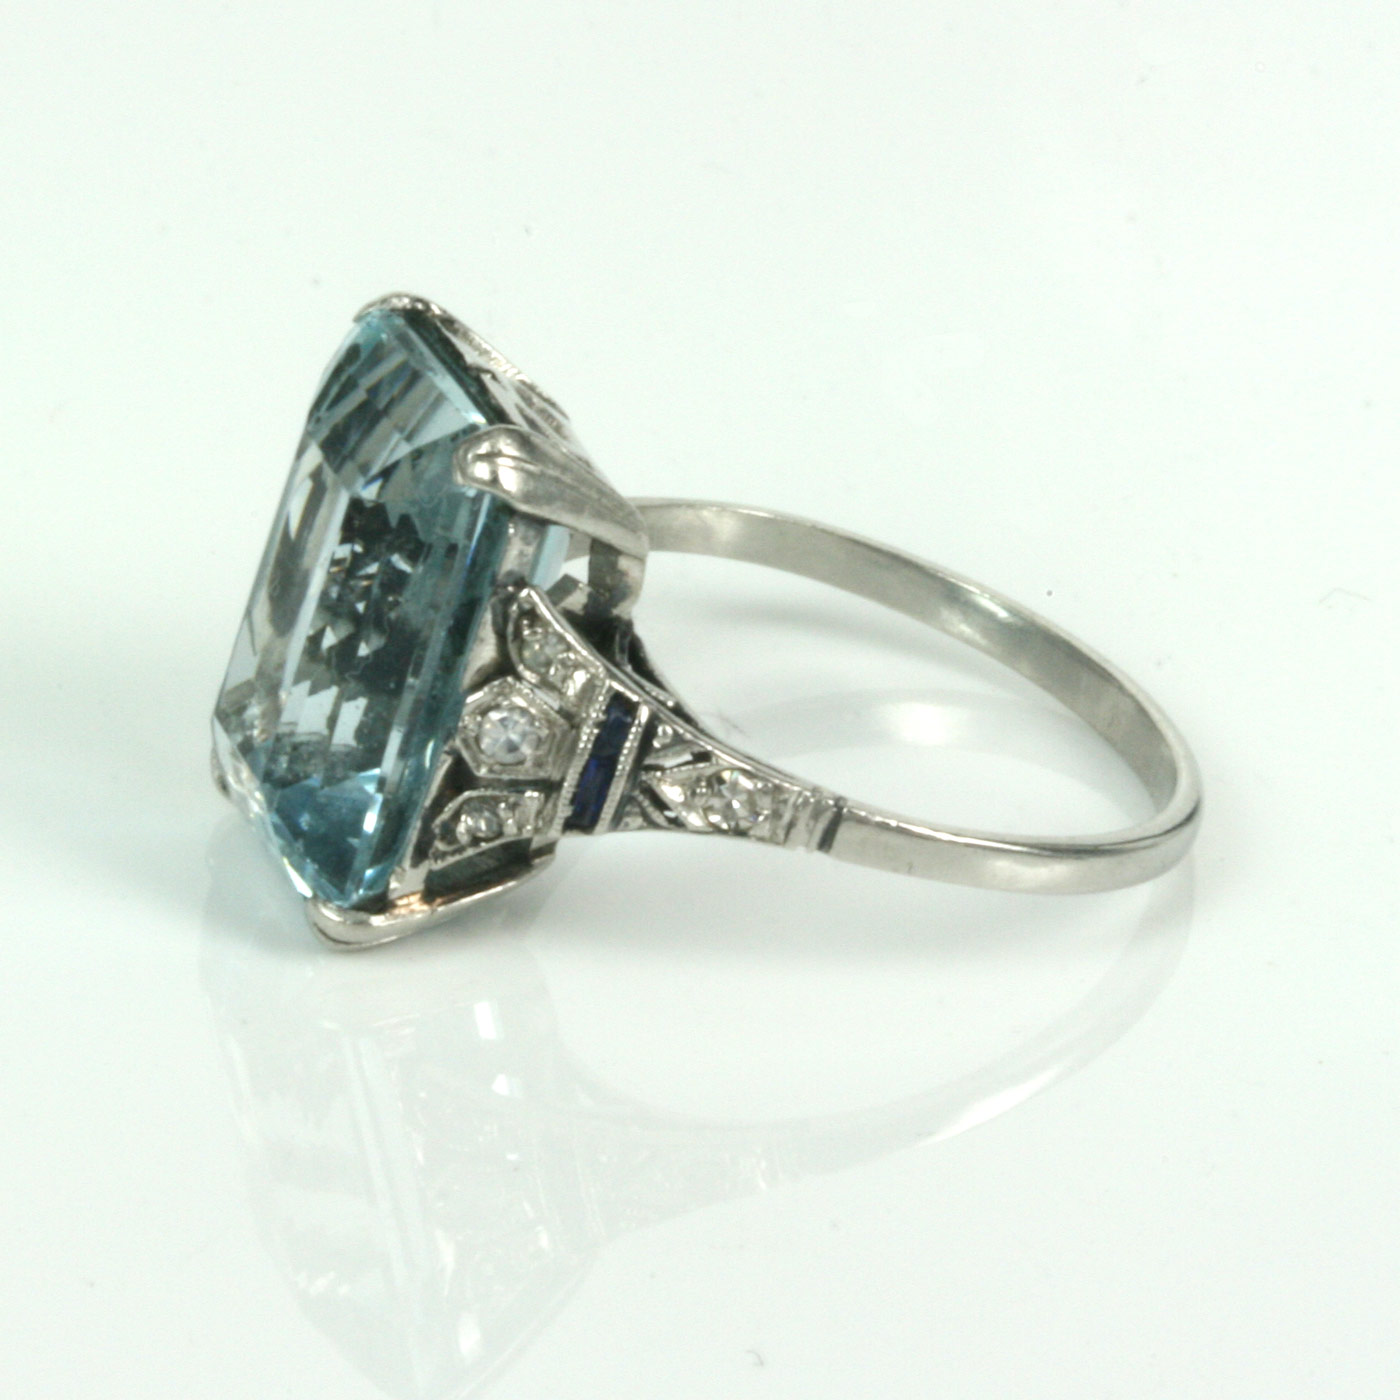 Buy Art Deco Aquamarine Ring In Platinum Sold Items Sold